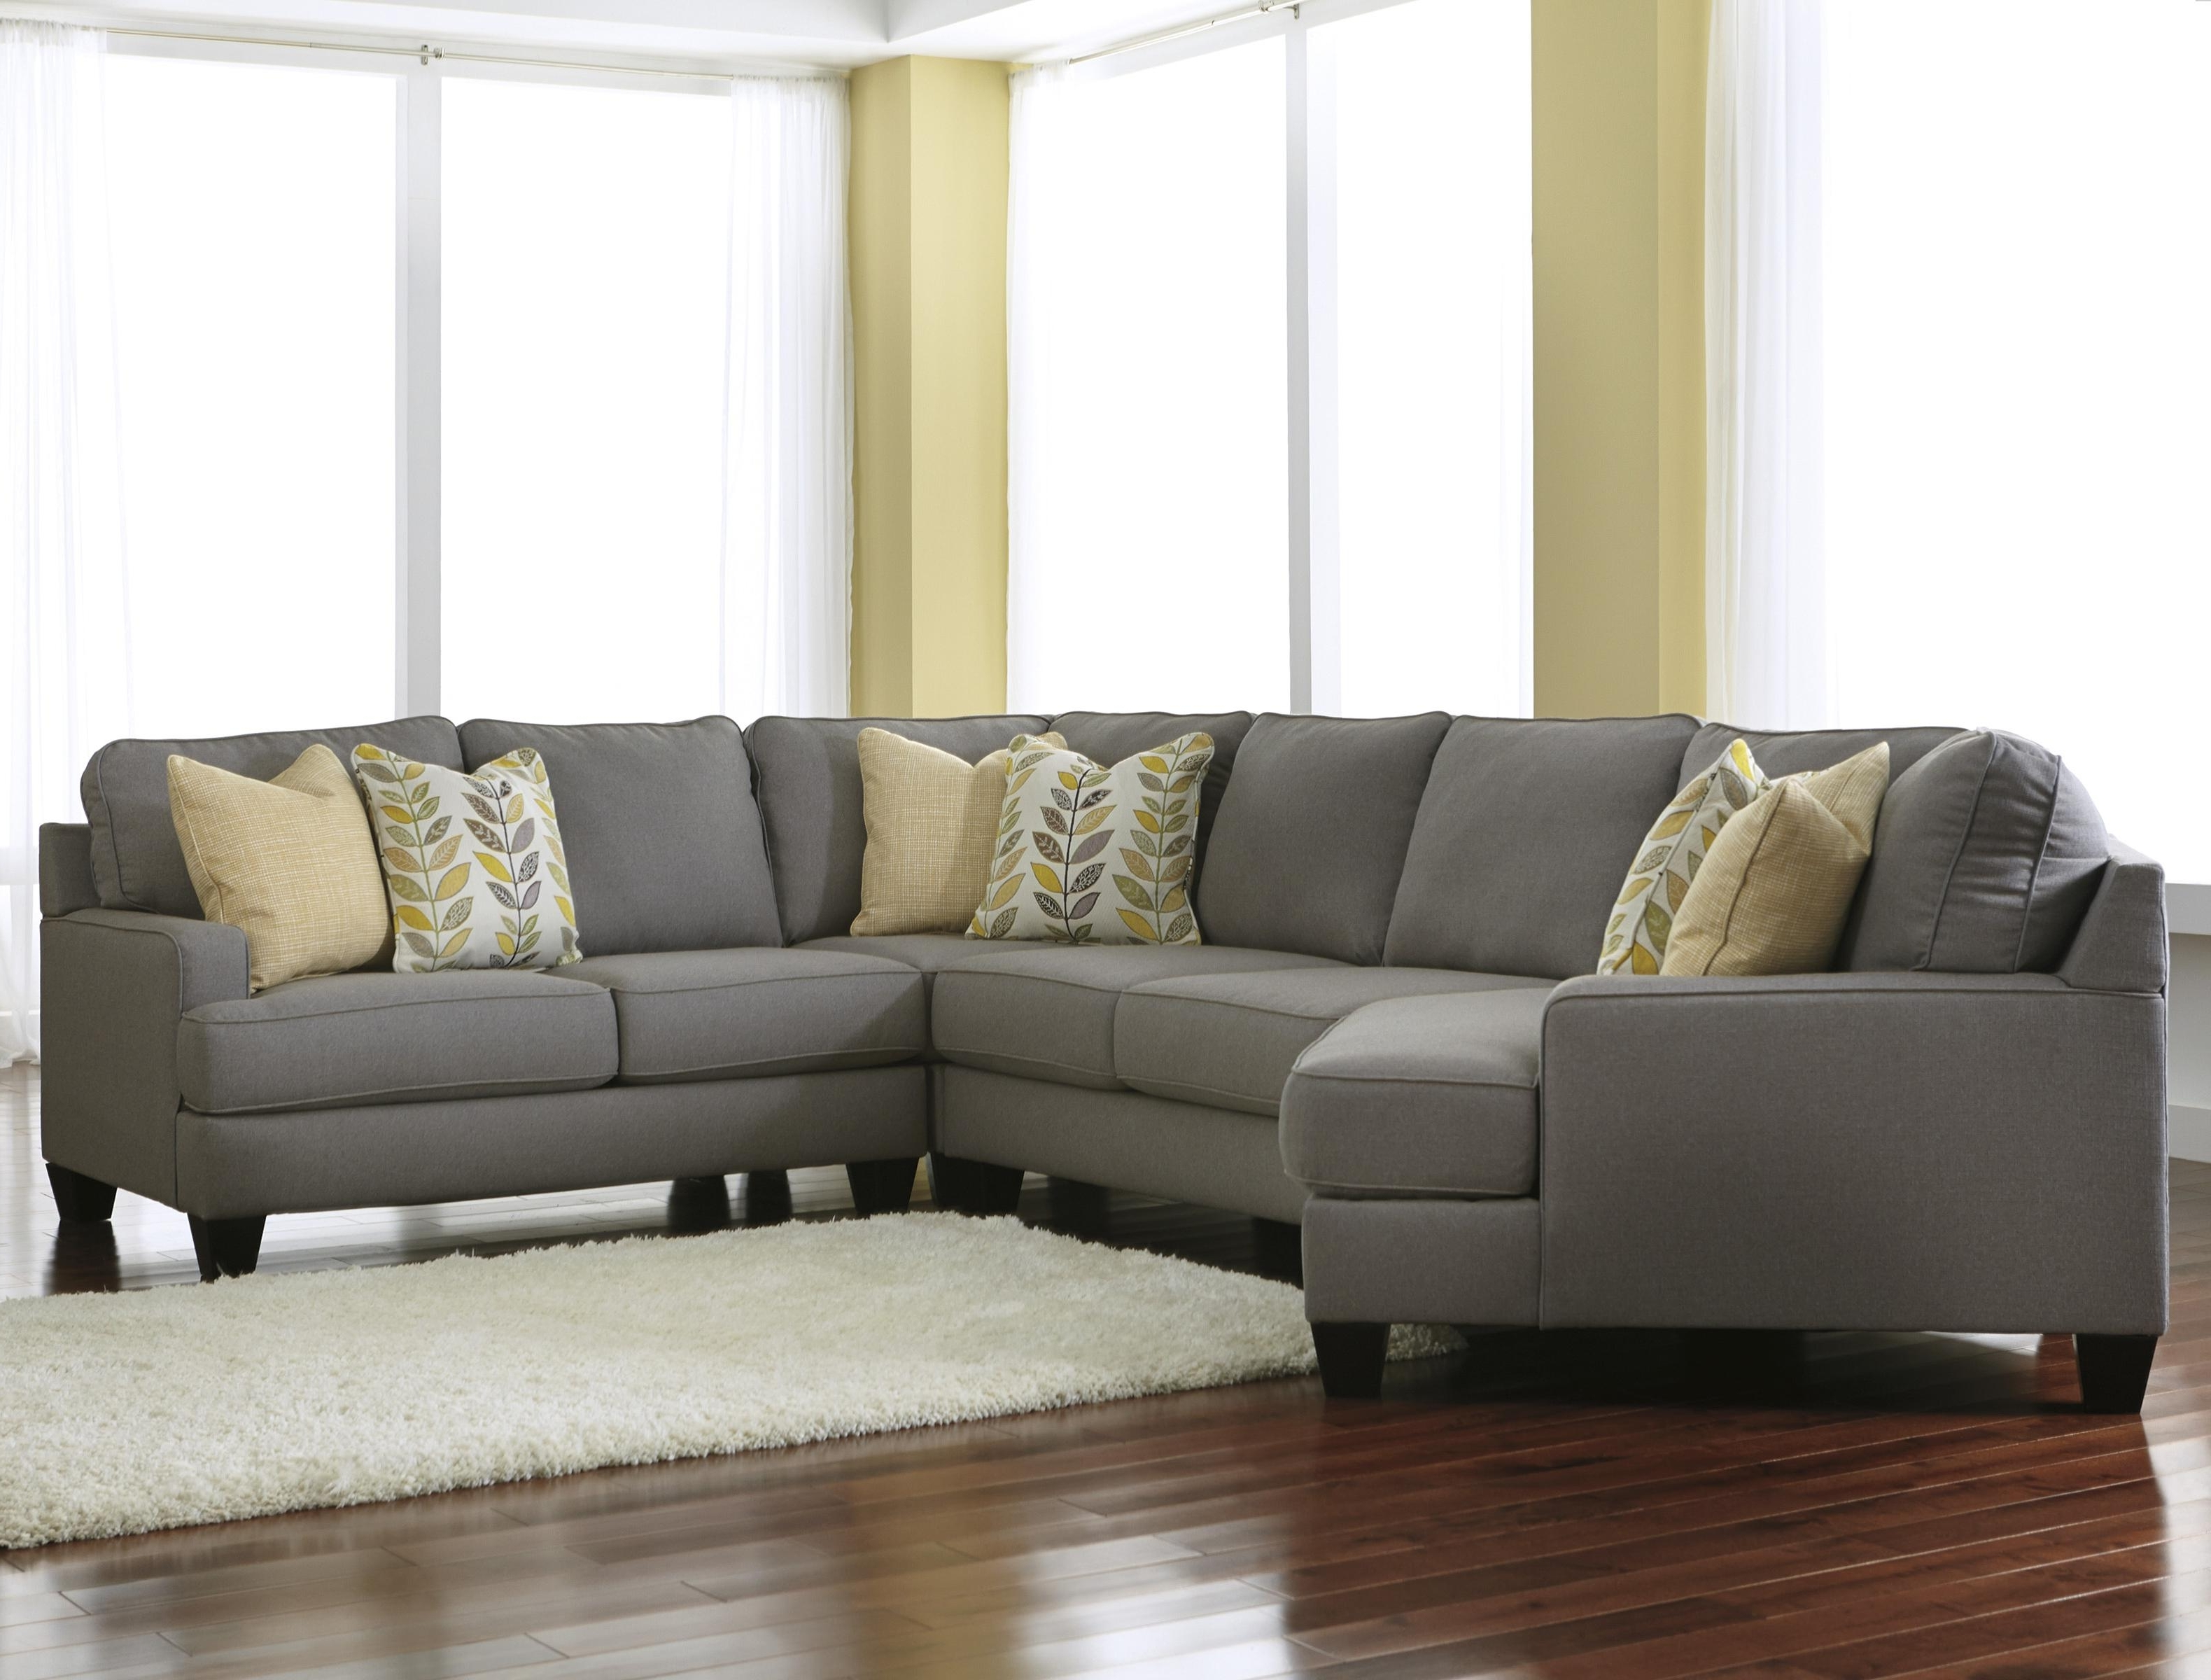 Signature Designashley Chamberly – Alloy Modern 4 Piece Intended For Most Recent Cuddler Sectional Sofas (View 11 of 15)